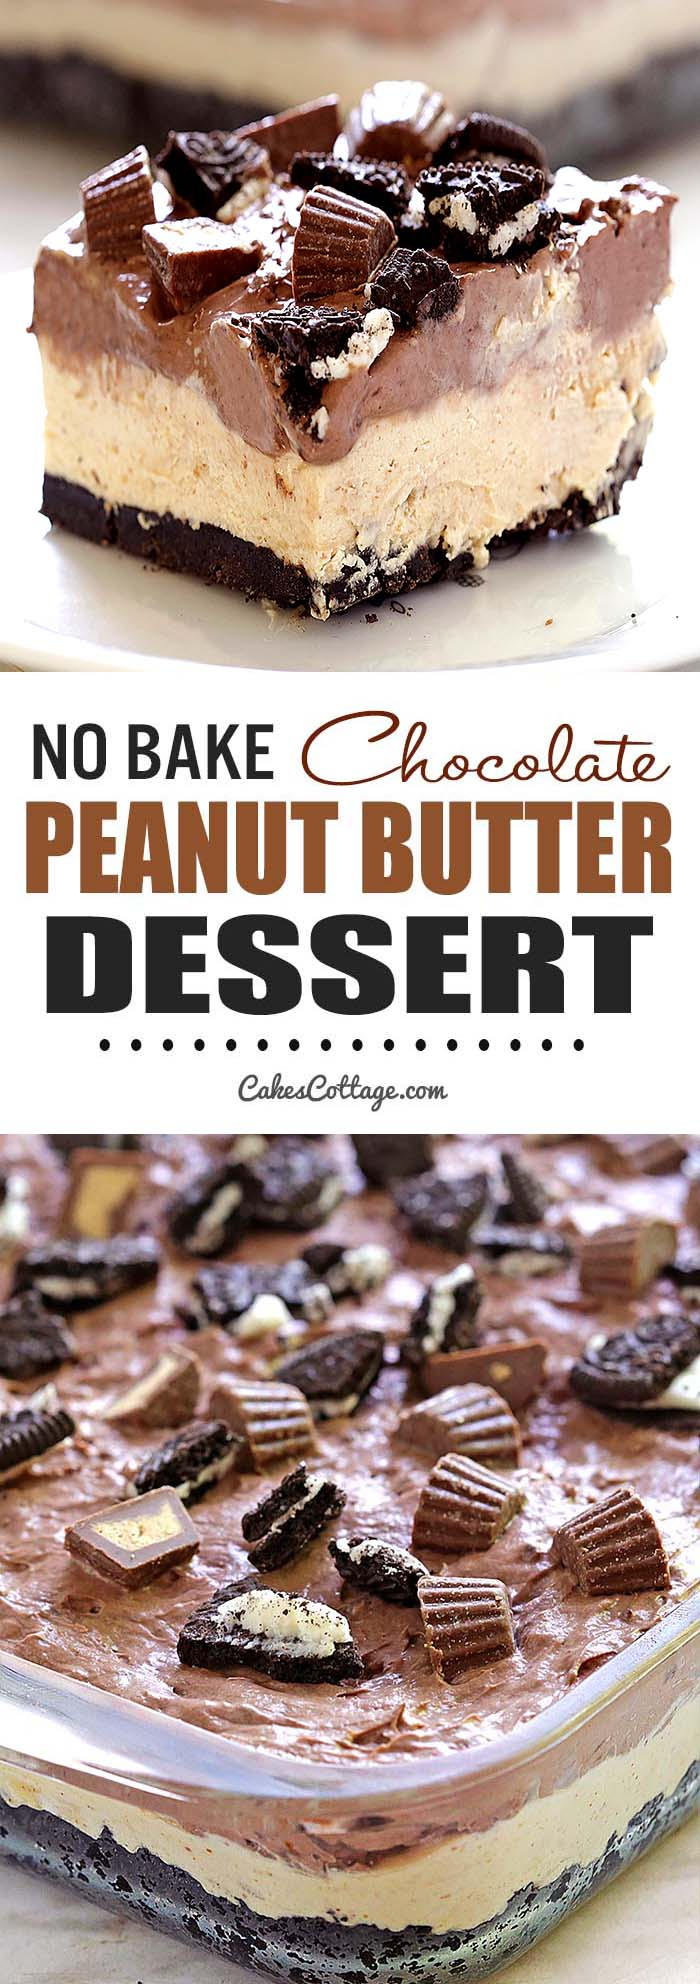 No Bake Chocolate Peanut Butter Dessert | Cakescottage